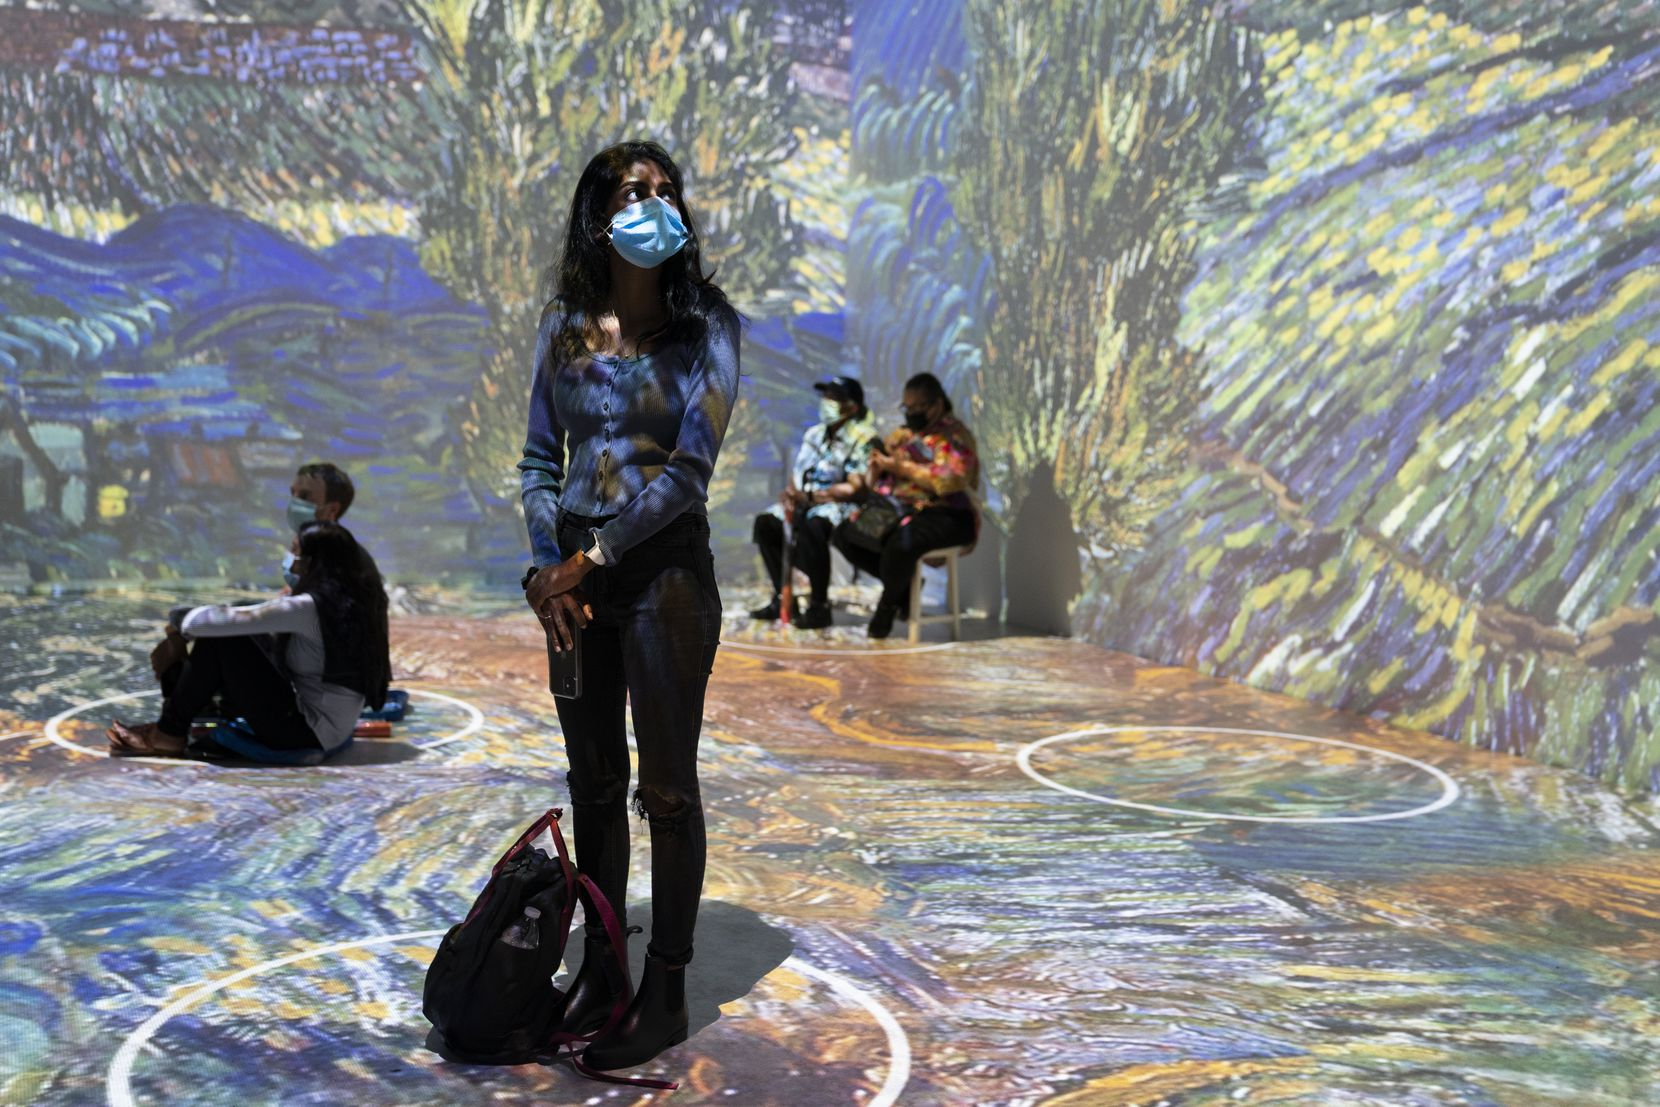 """Projections of selected works of celebrated painter Vincent Van Gogh were displayed at a preview of the """"Immersive Van Gogh"""" exhibit on June 4 in New York."""